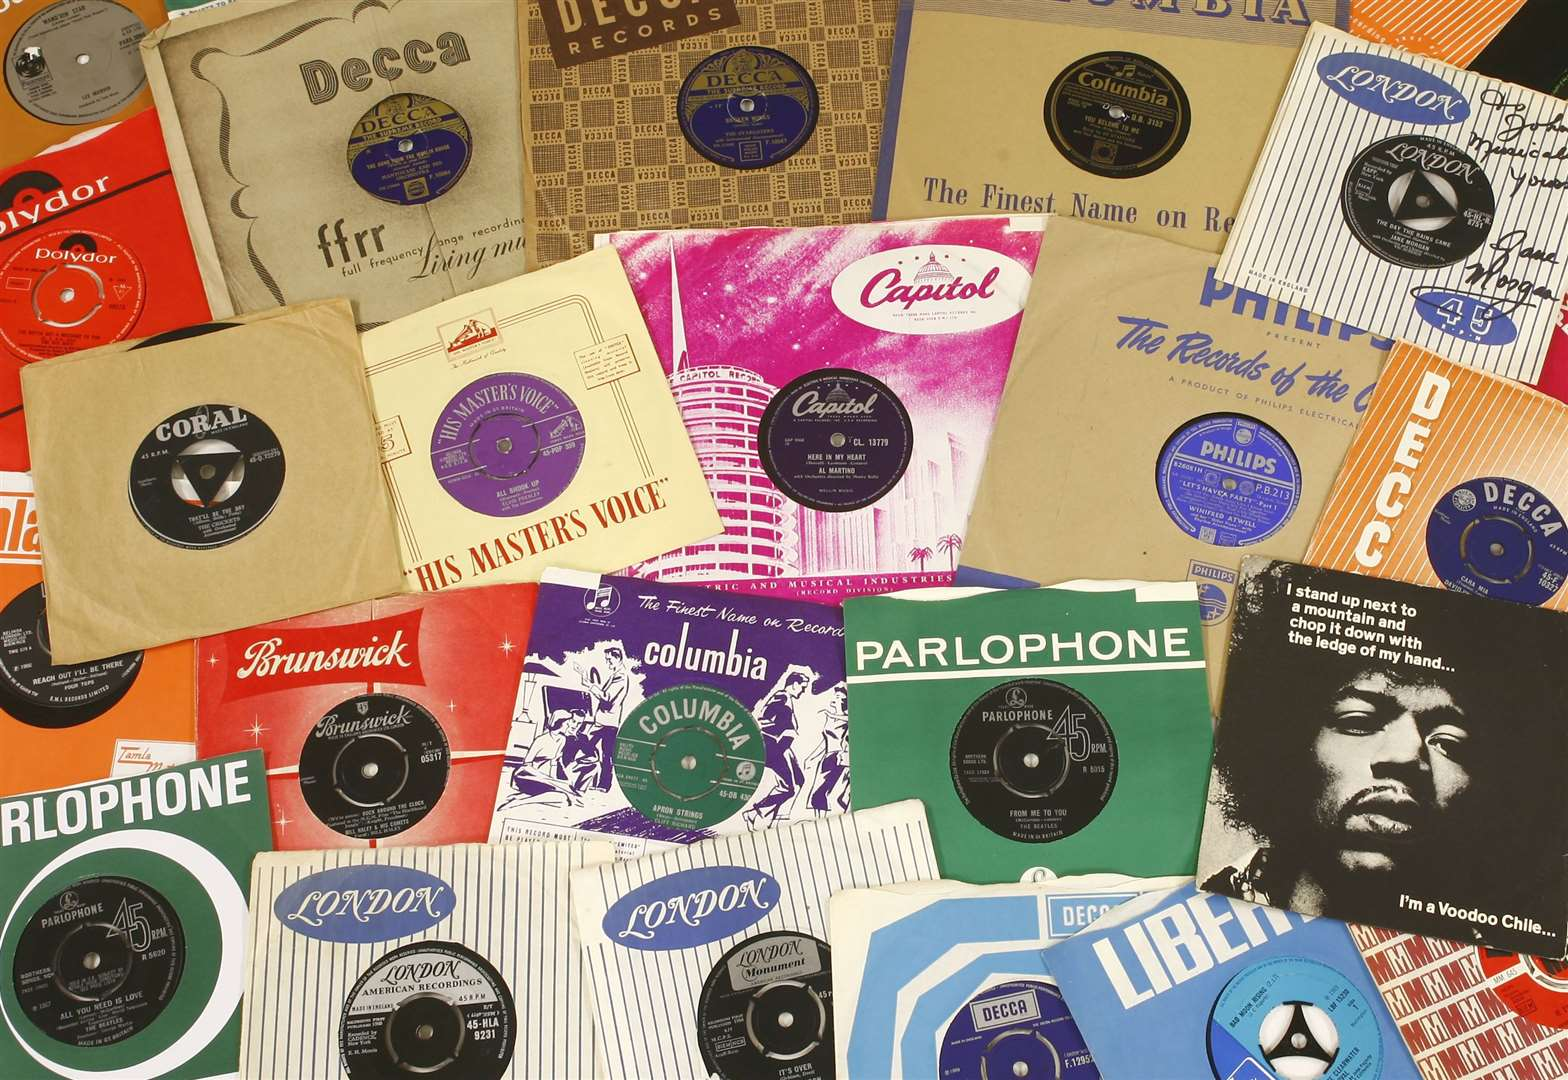 Vinyl countdown: Sworders to sell Essex man's collection of every No 1 single over 40-year period